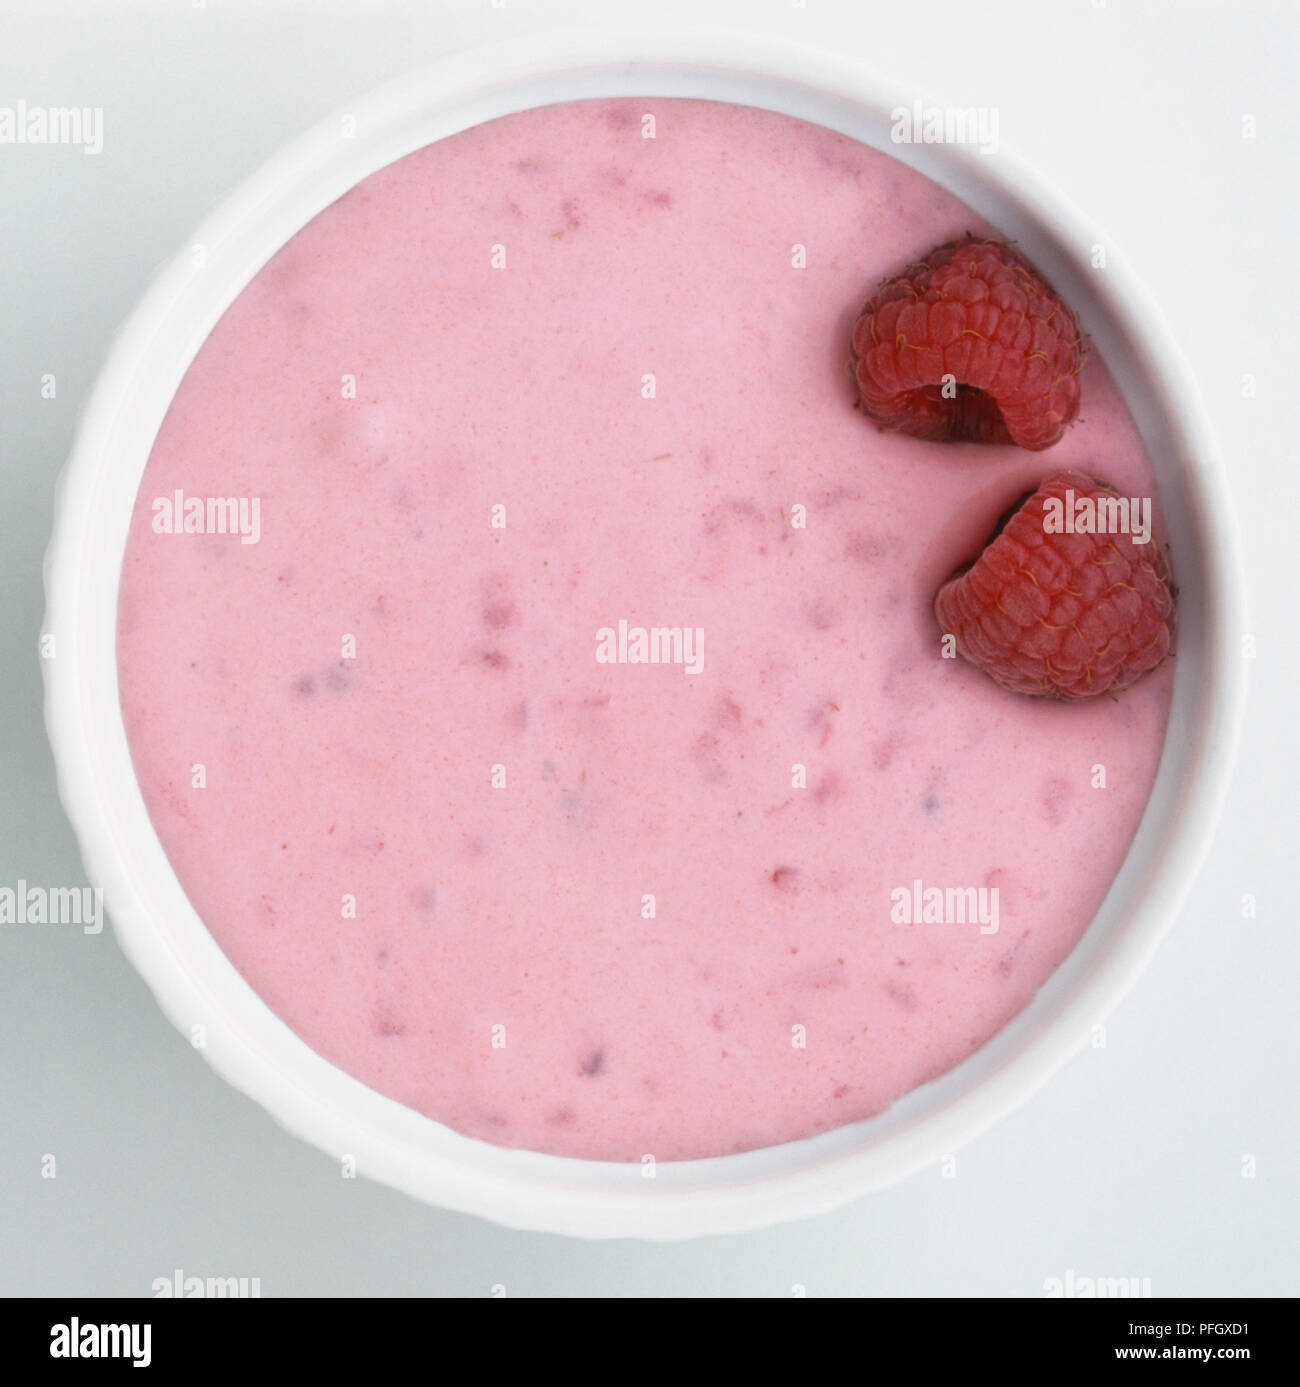 Four raspberry fools, made from whipped cream and pureed fruit, topped with fresh raspberries in four round white ramekins. - Stock Image